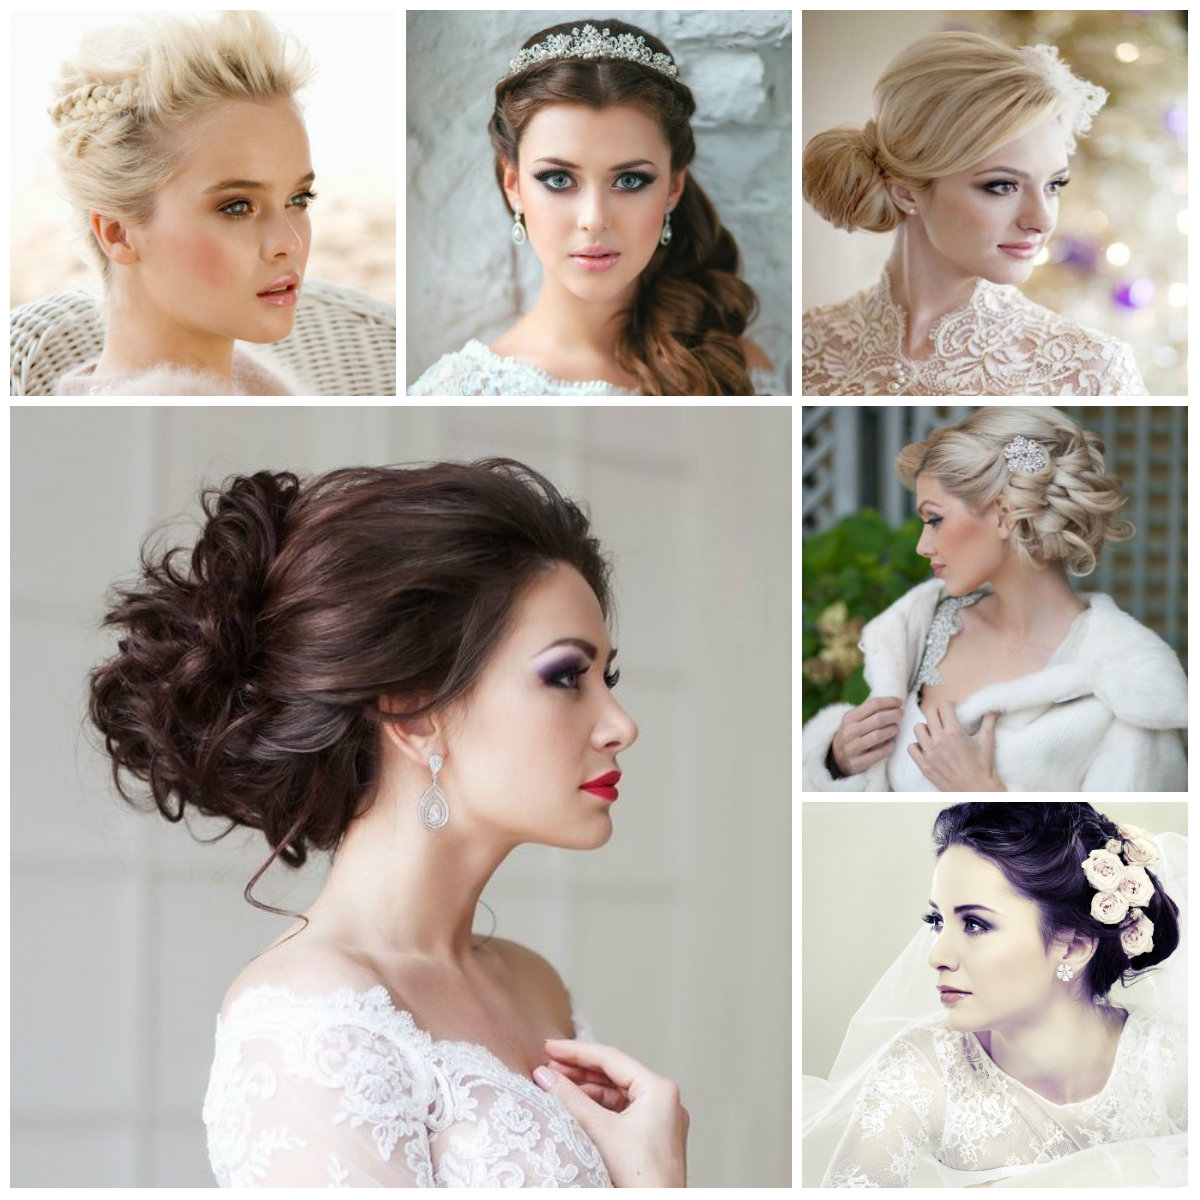 wedding hairstyles 2019 haircuts hairstyles and hair colors. Black Bedroom Furniture Sets. Home Design Ideas